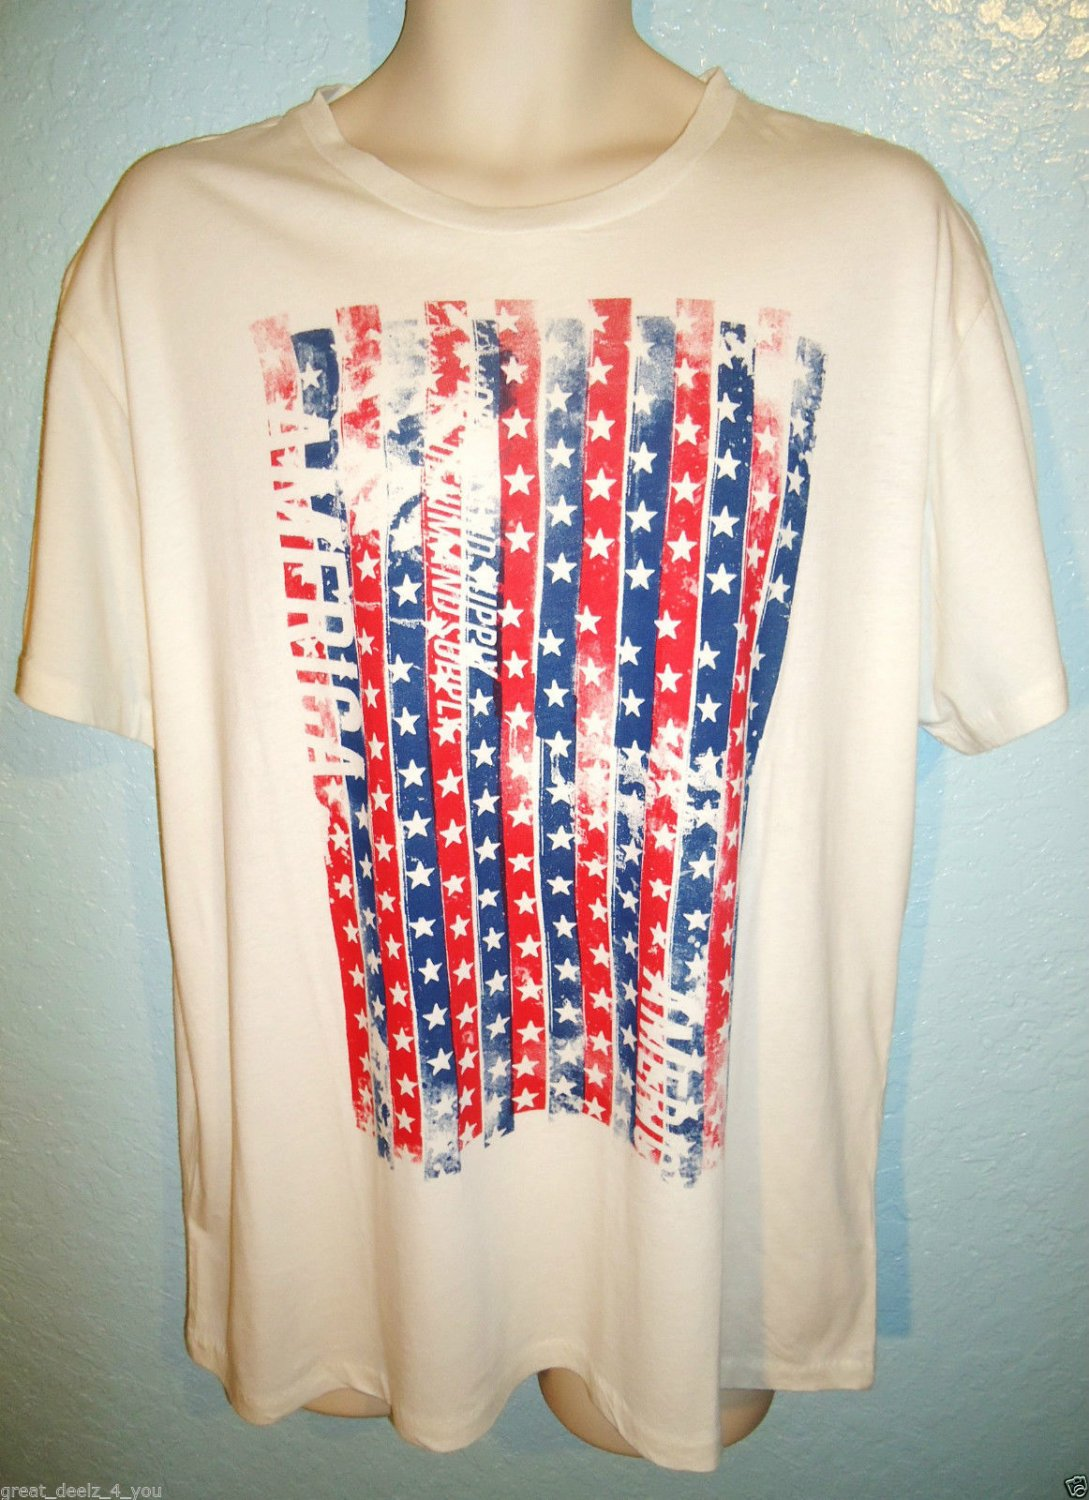 RALPH LAUREN - POLO - RL - AMERICAN - FLAG - XL - TEE - BRAND NEW - T-SHIRT